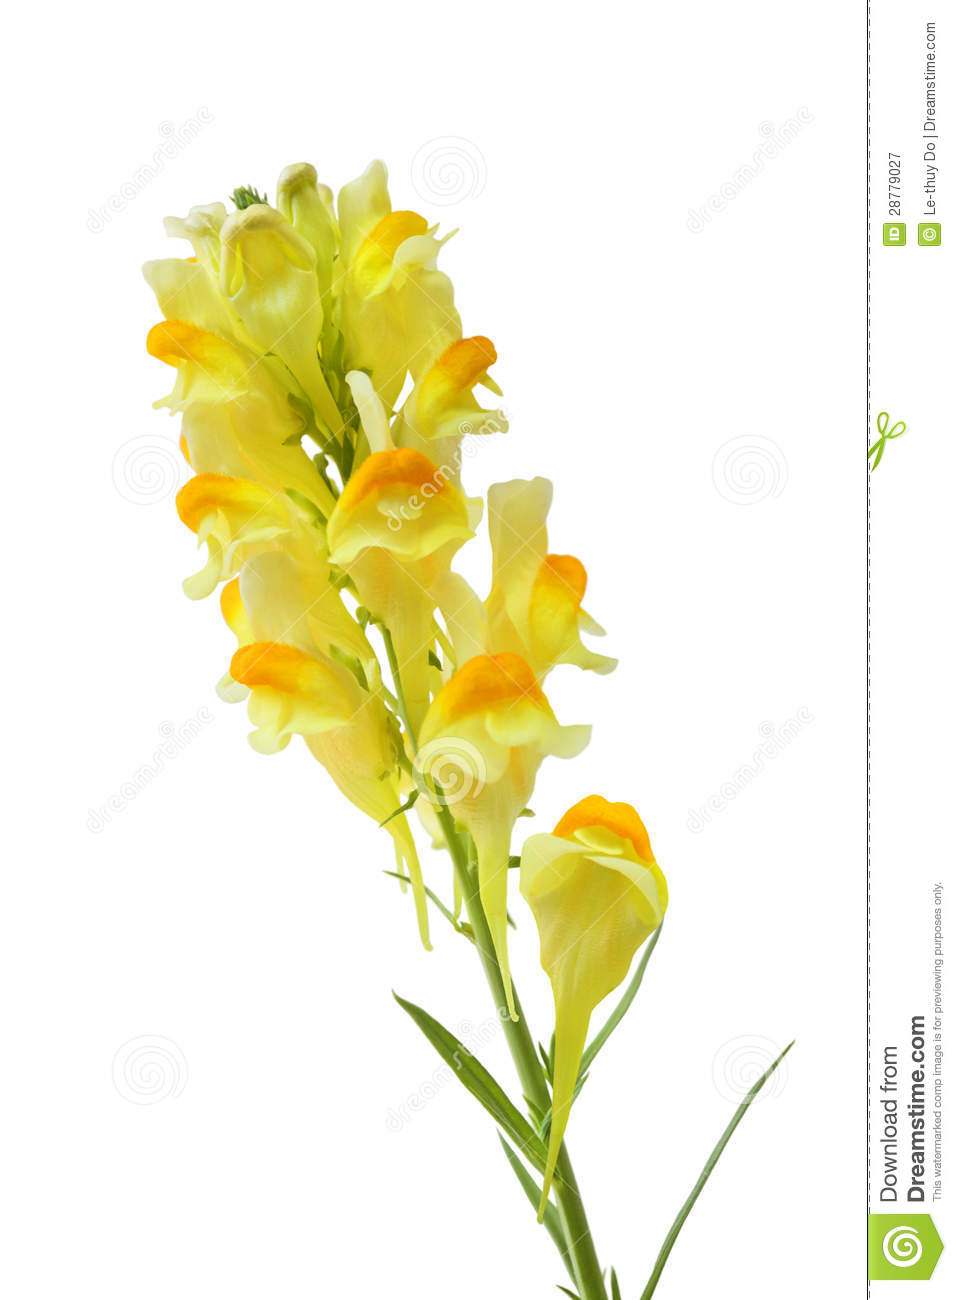 Butter And Eggs Linaria Vulgaris Flower Royalty Free Stock.